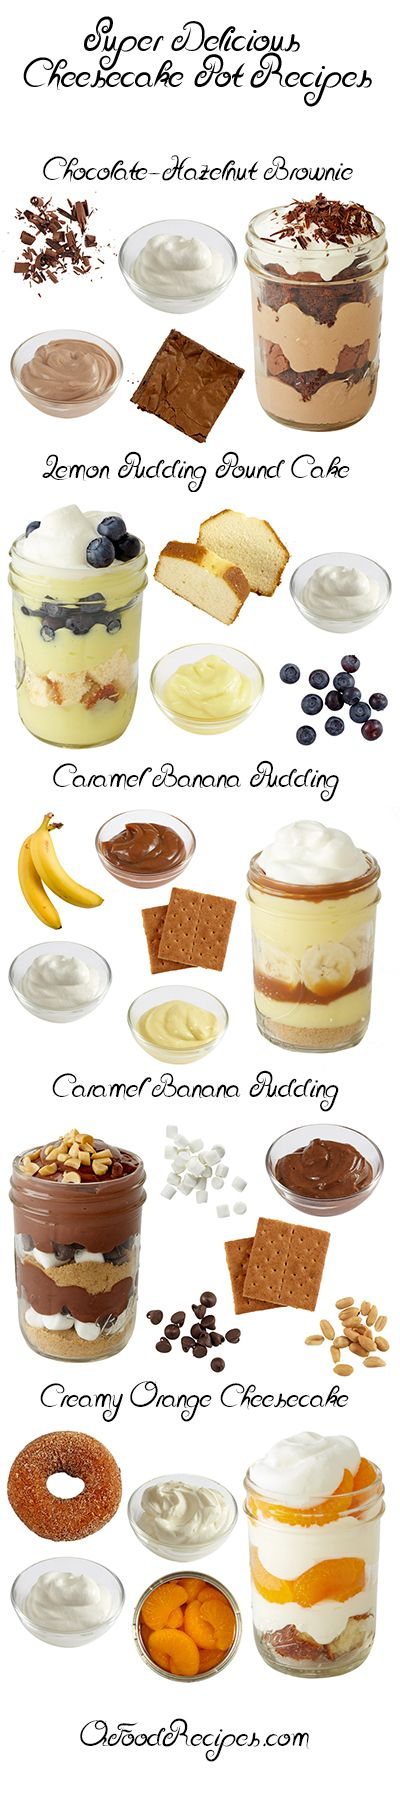 Super Delicious Cheesecake Pot Recipes